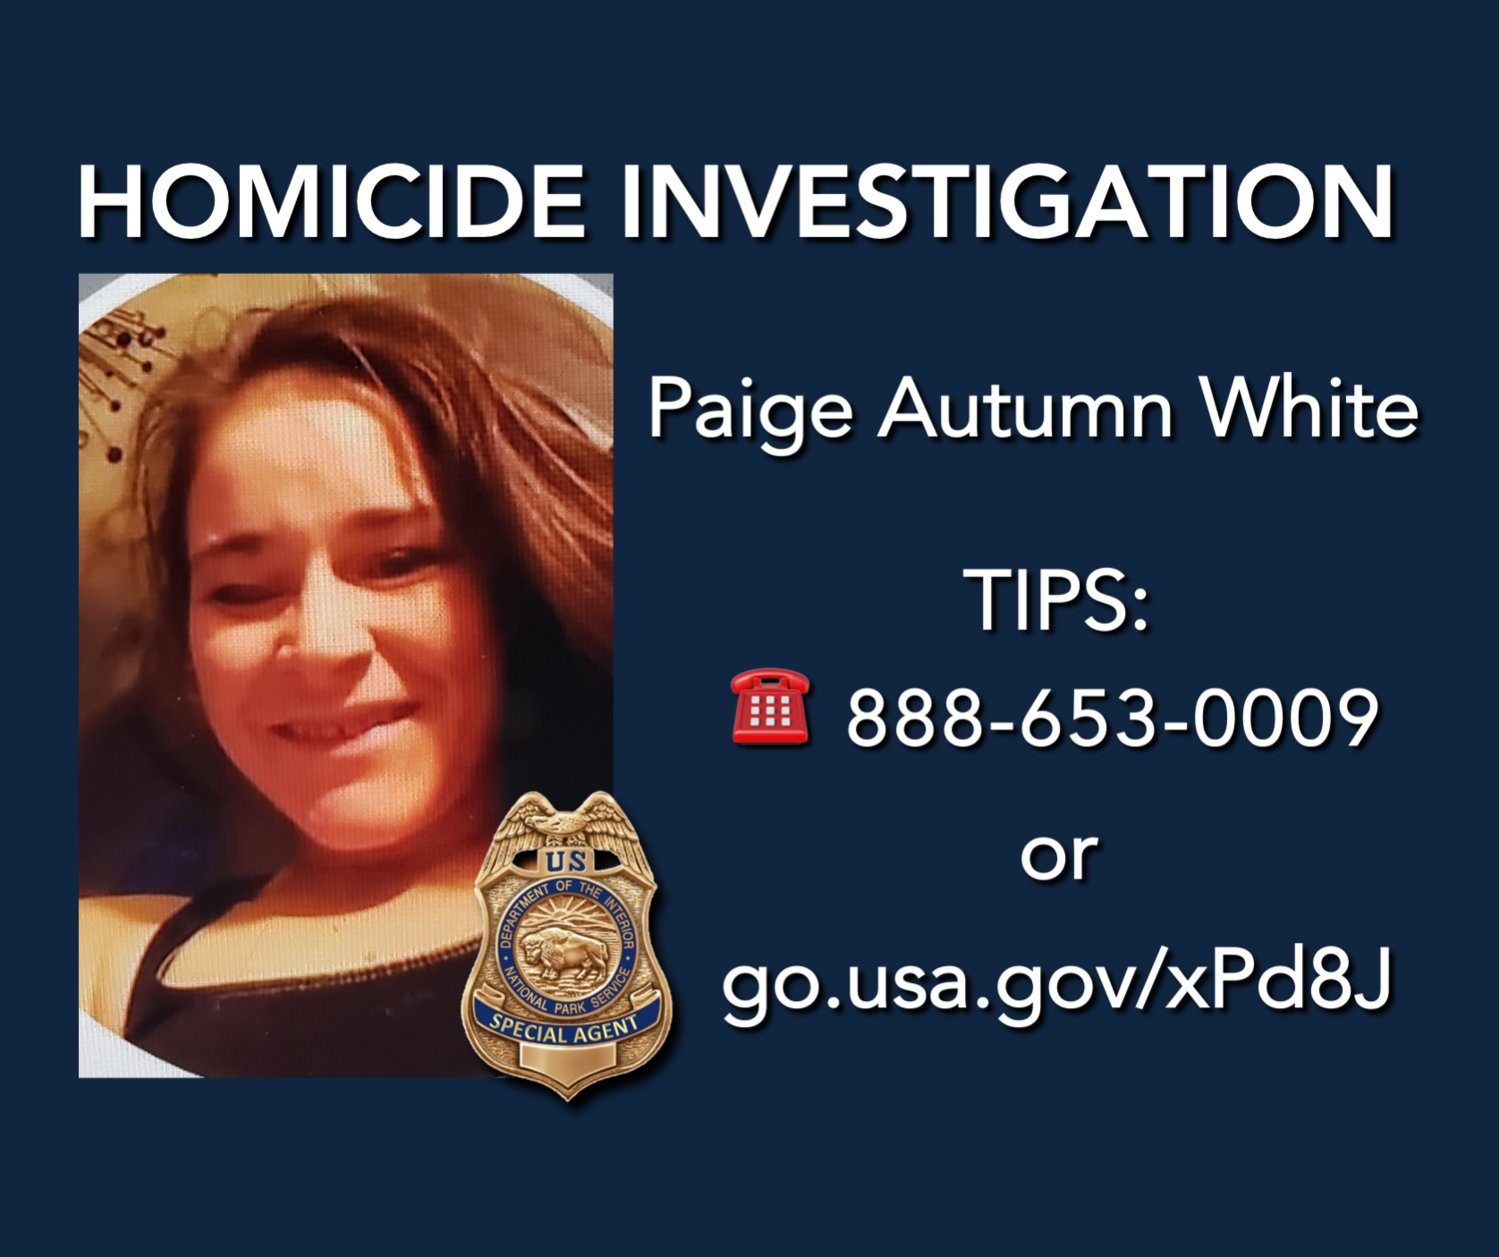 Paige Autumn White was the victim of a homicide whose remains were found in Hot Springs National Park